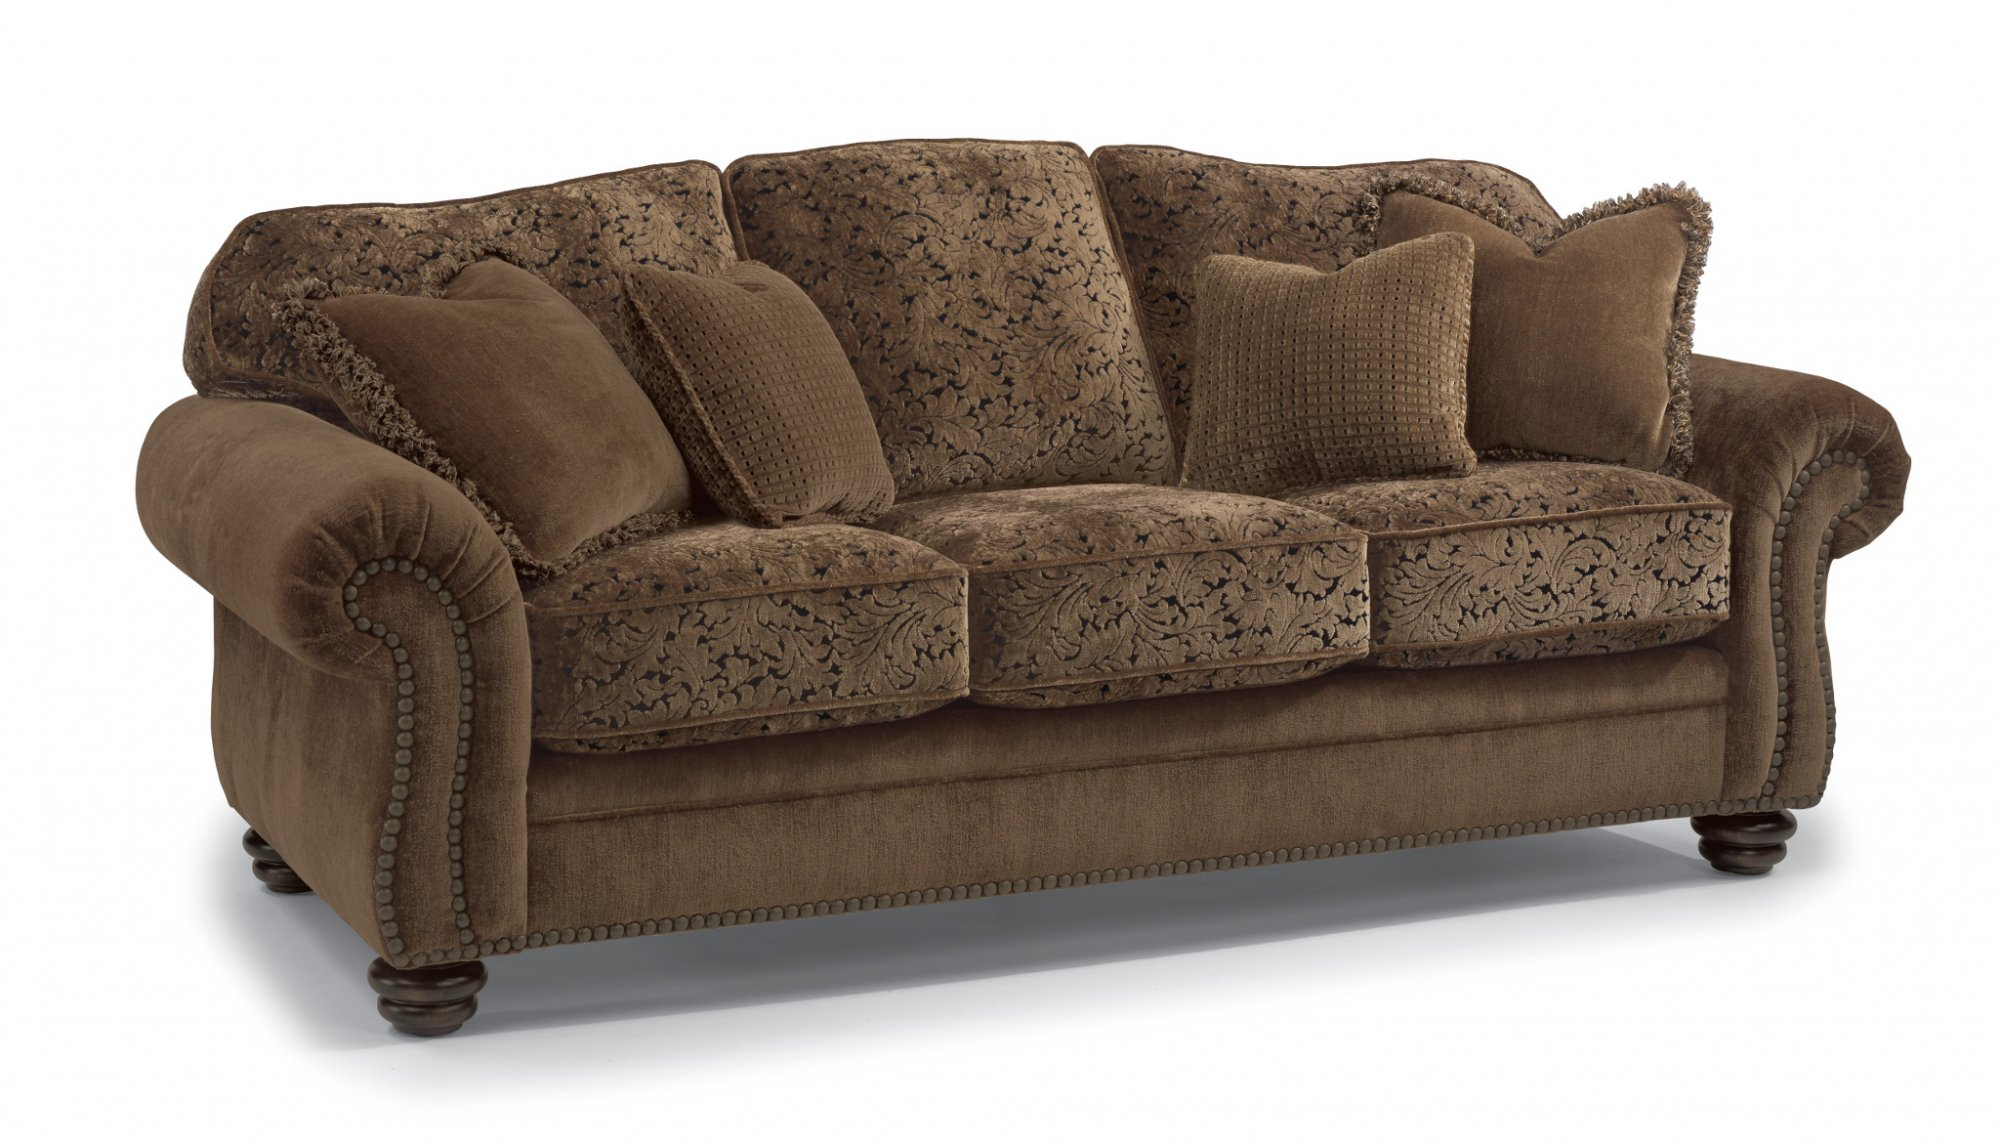 Great Flexsteel Sofa 77 With Additional Living Room Sofa Inspiration with Flexsteel Sofa